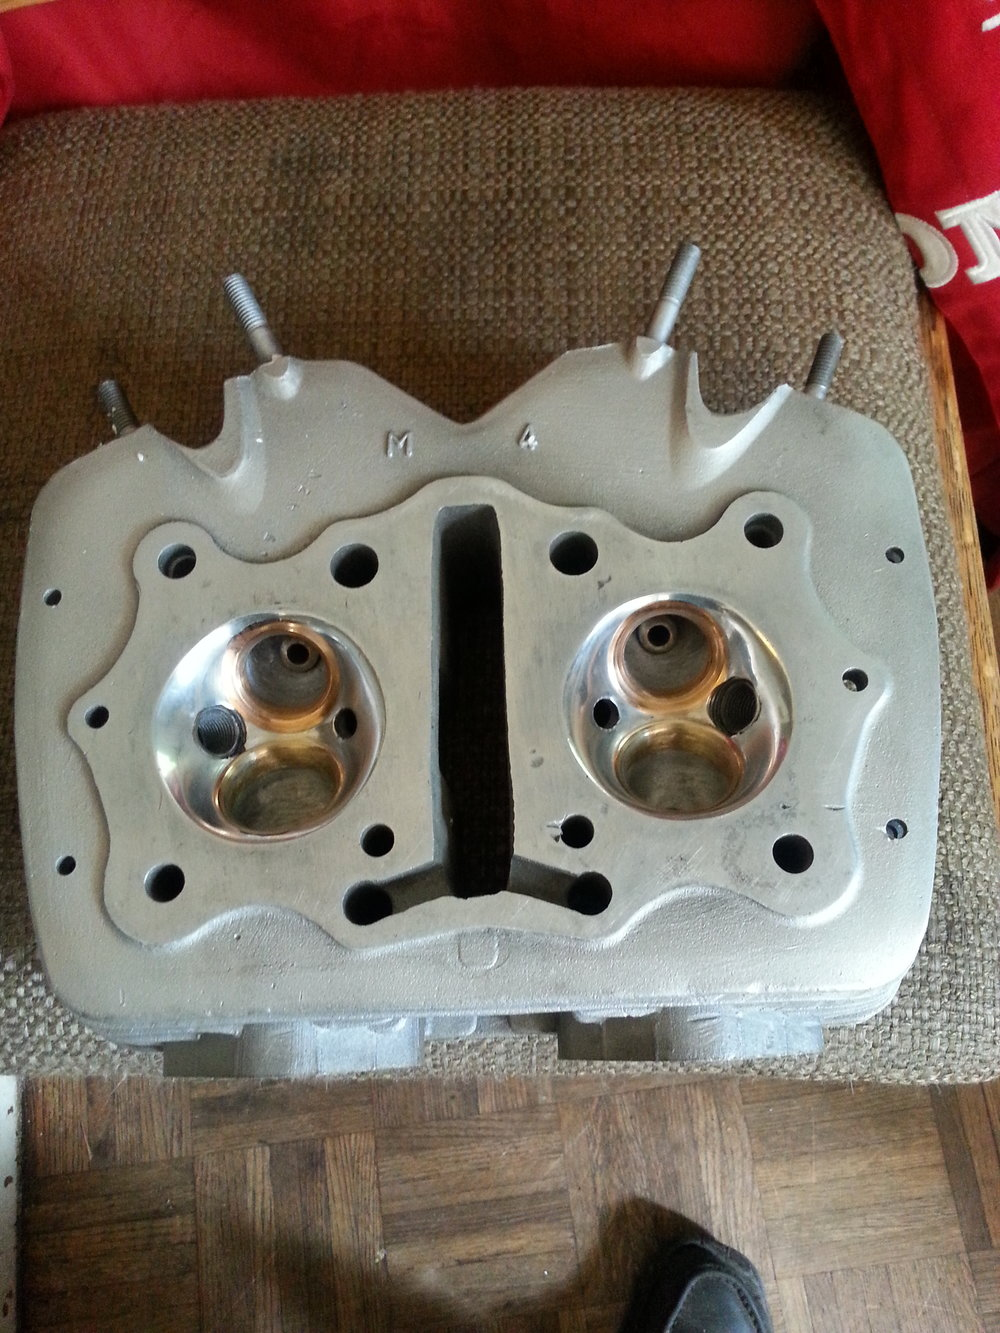 CB350 head ready for fresh valves